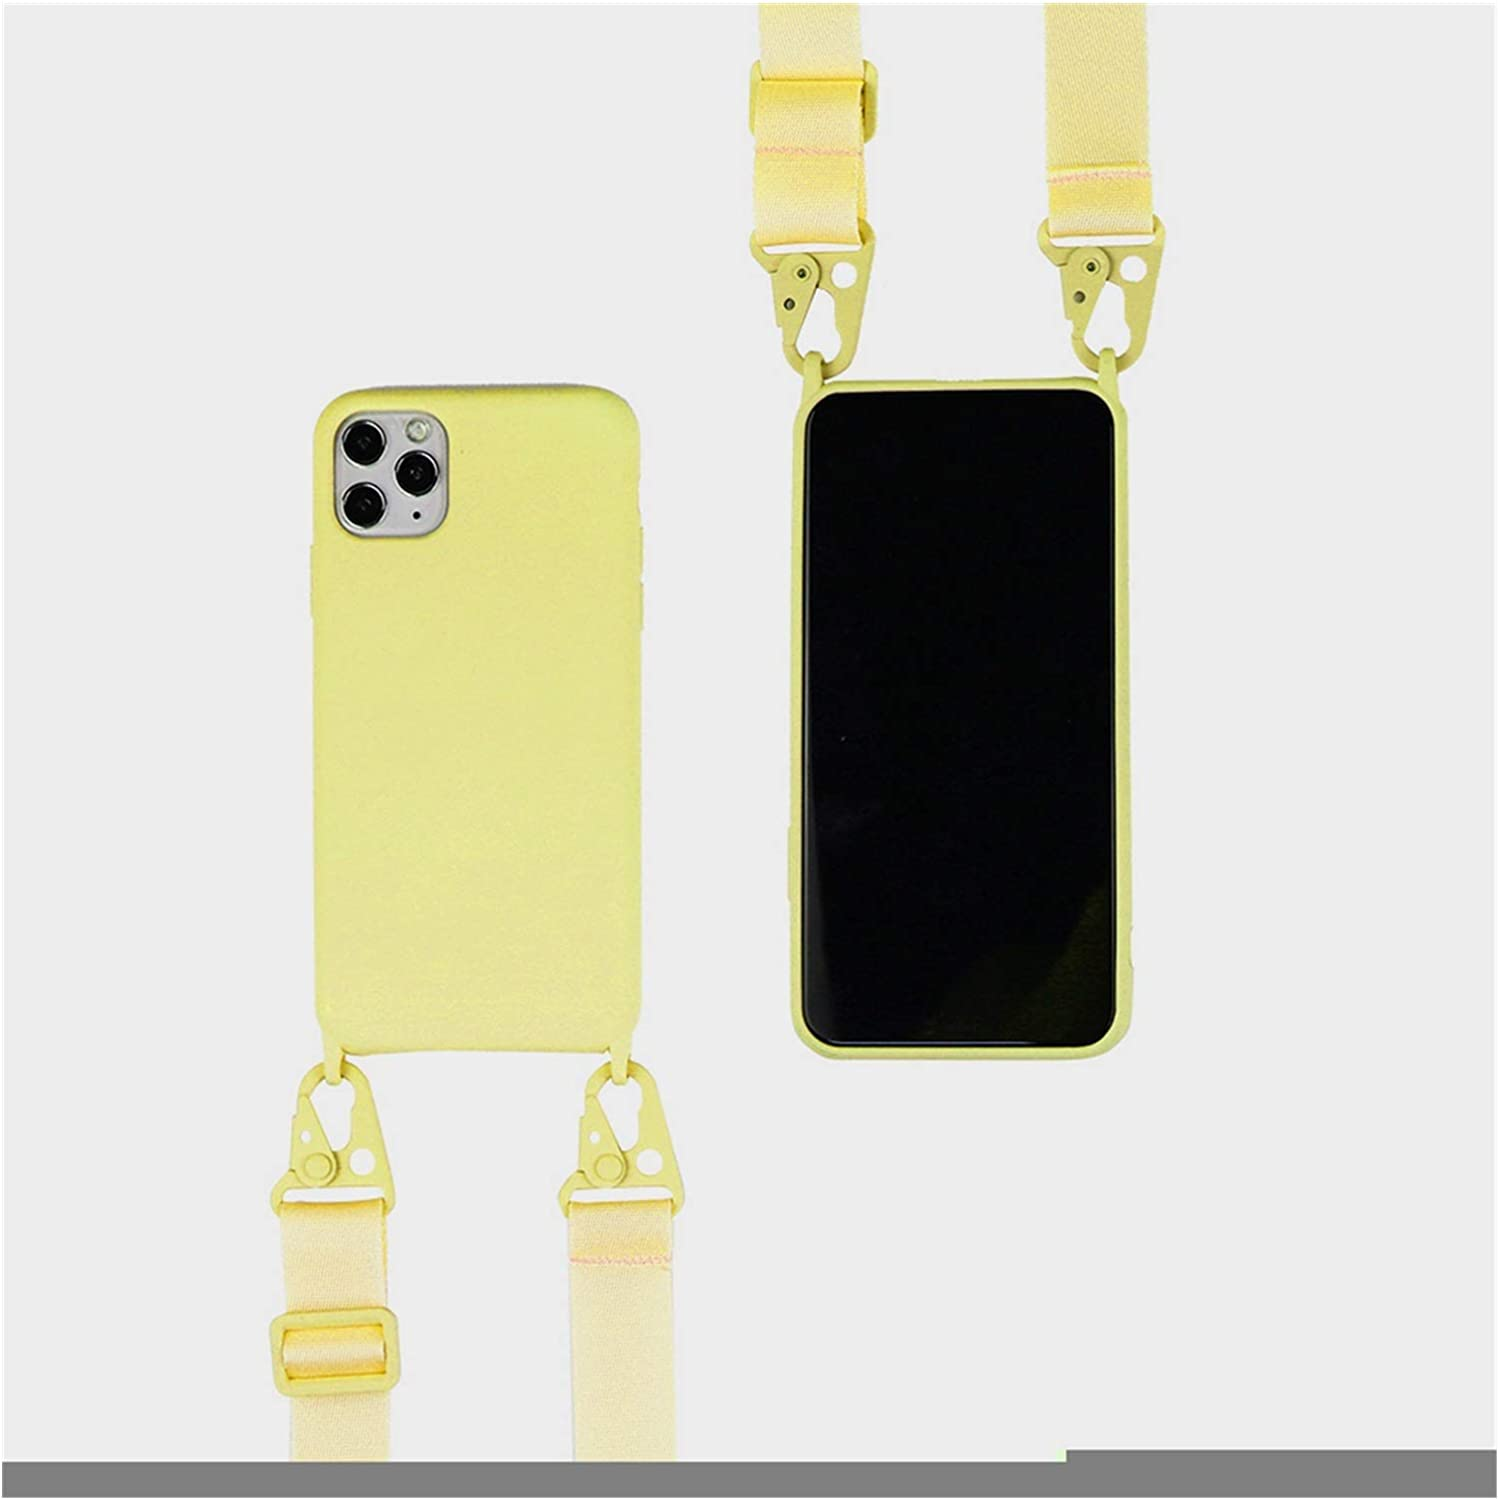 Zija Crossbody Necklace Holder Phone Case for iPhone 11 pro XS max Xr 6s 7 8 Plus Lanyard Silicone Case Cover with Cord Strap Rope (Color : Yellow Strap, Material : for iPhone12 Mini)